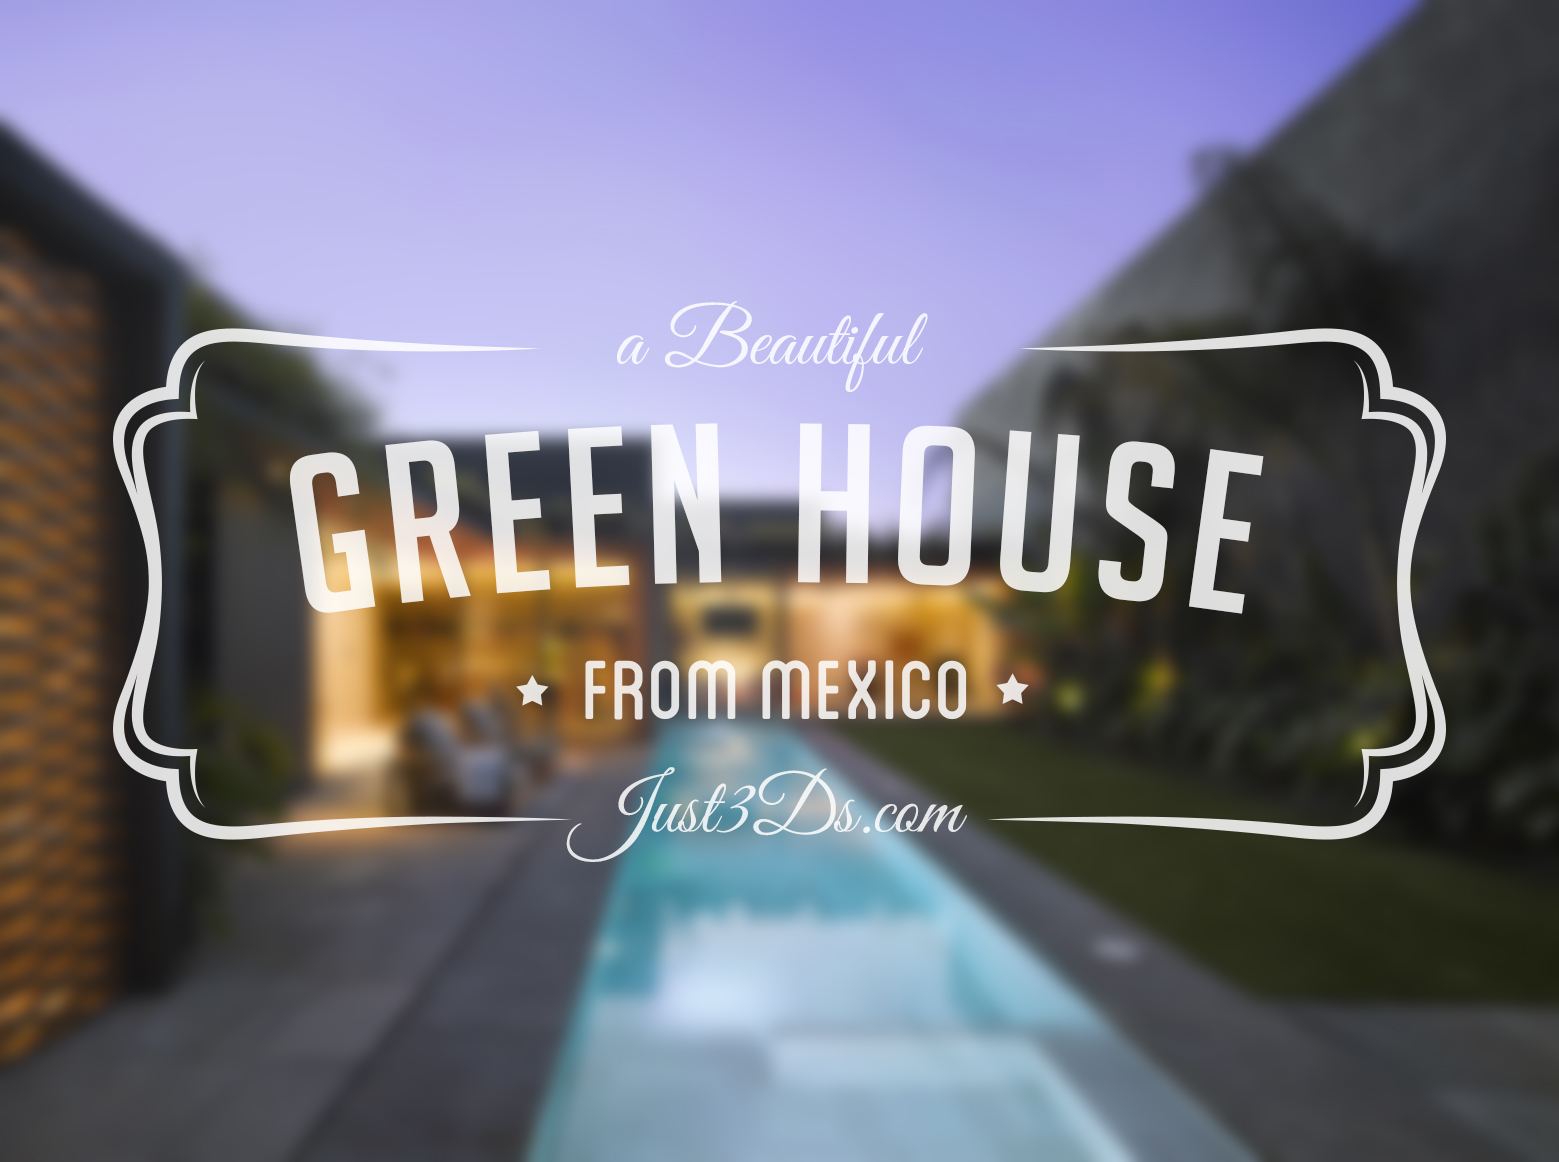 1Green-house-mexico-just3ds.com